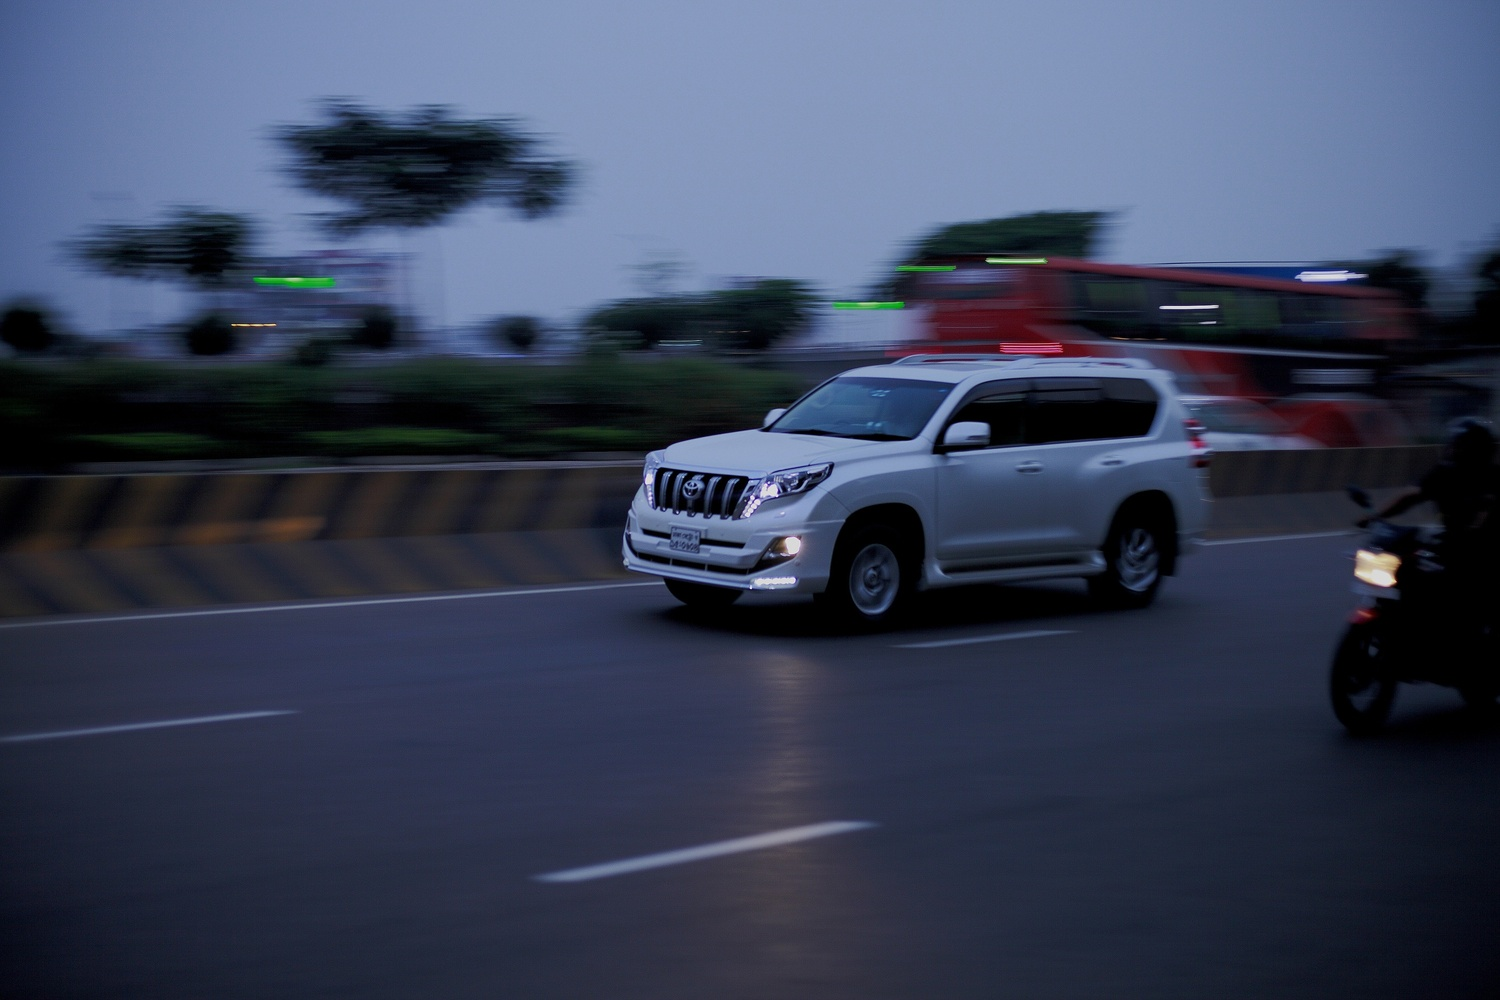 Evening panning. by Quazi Sanjeed